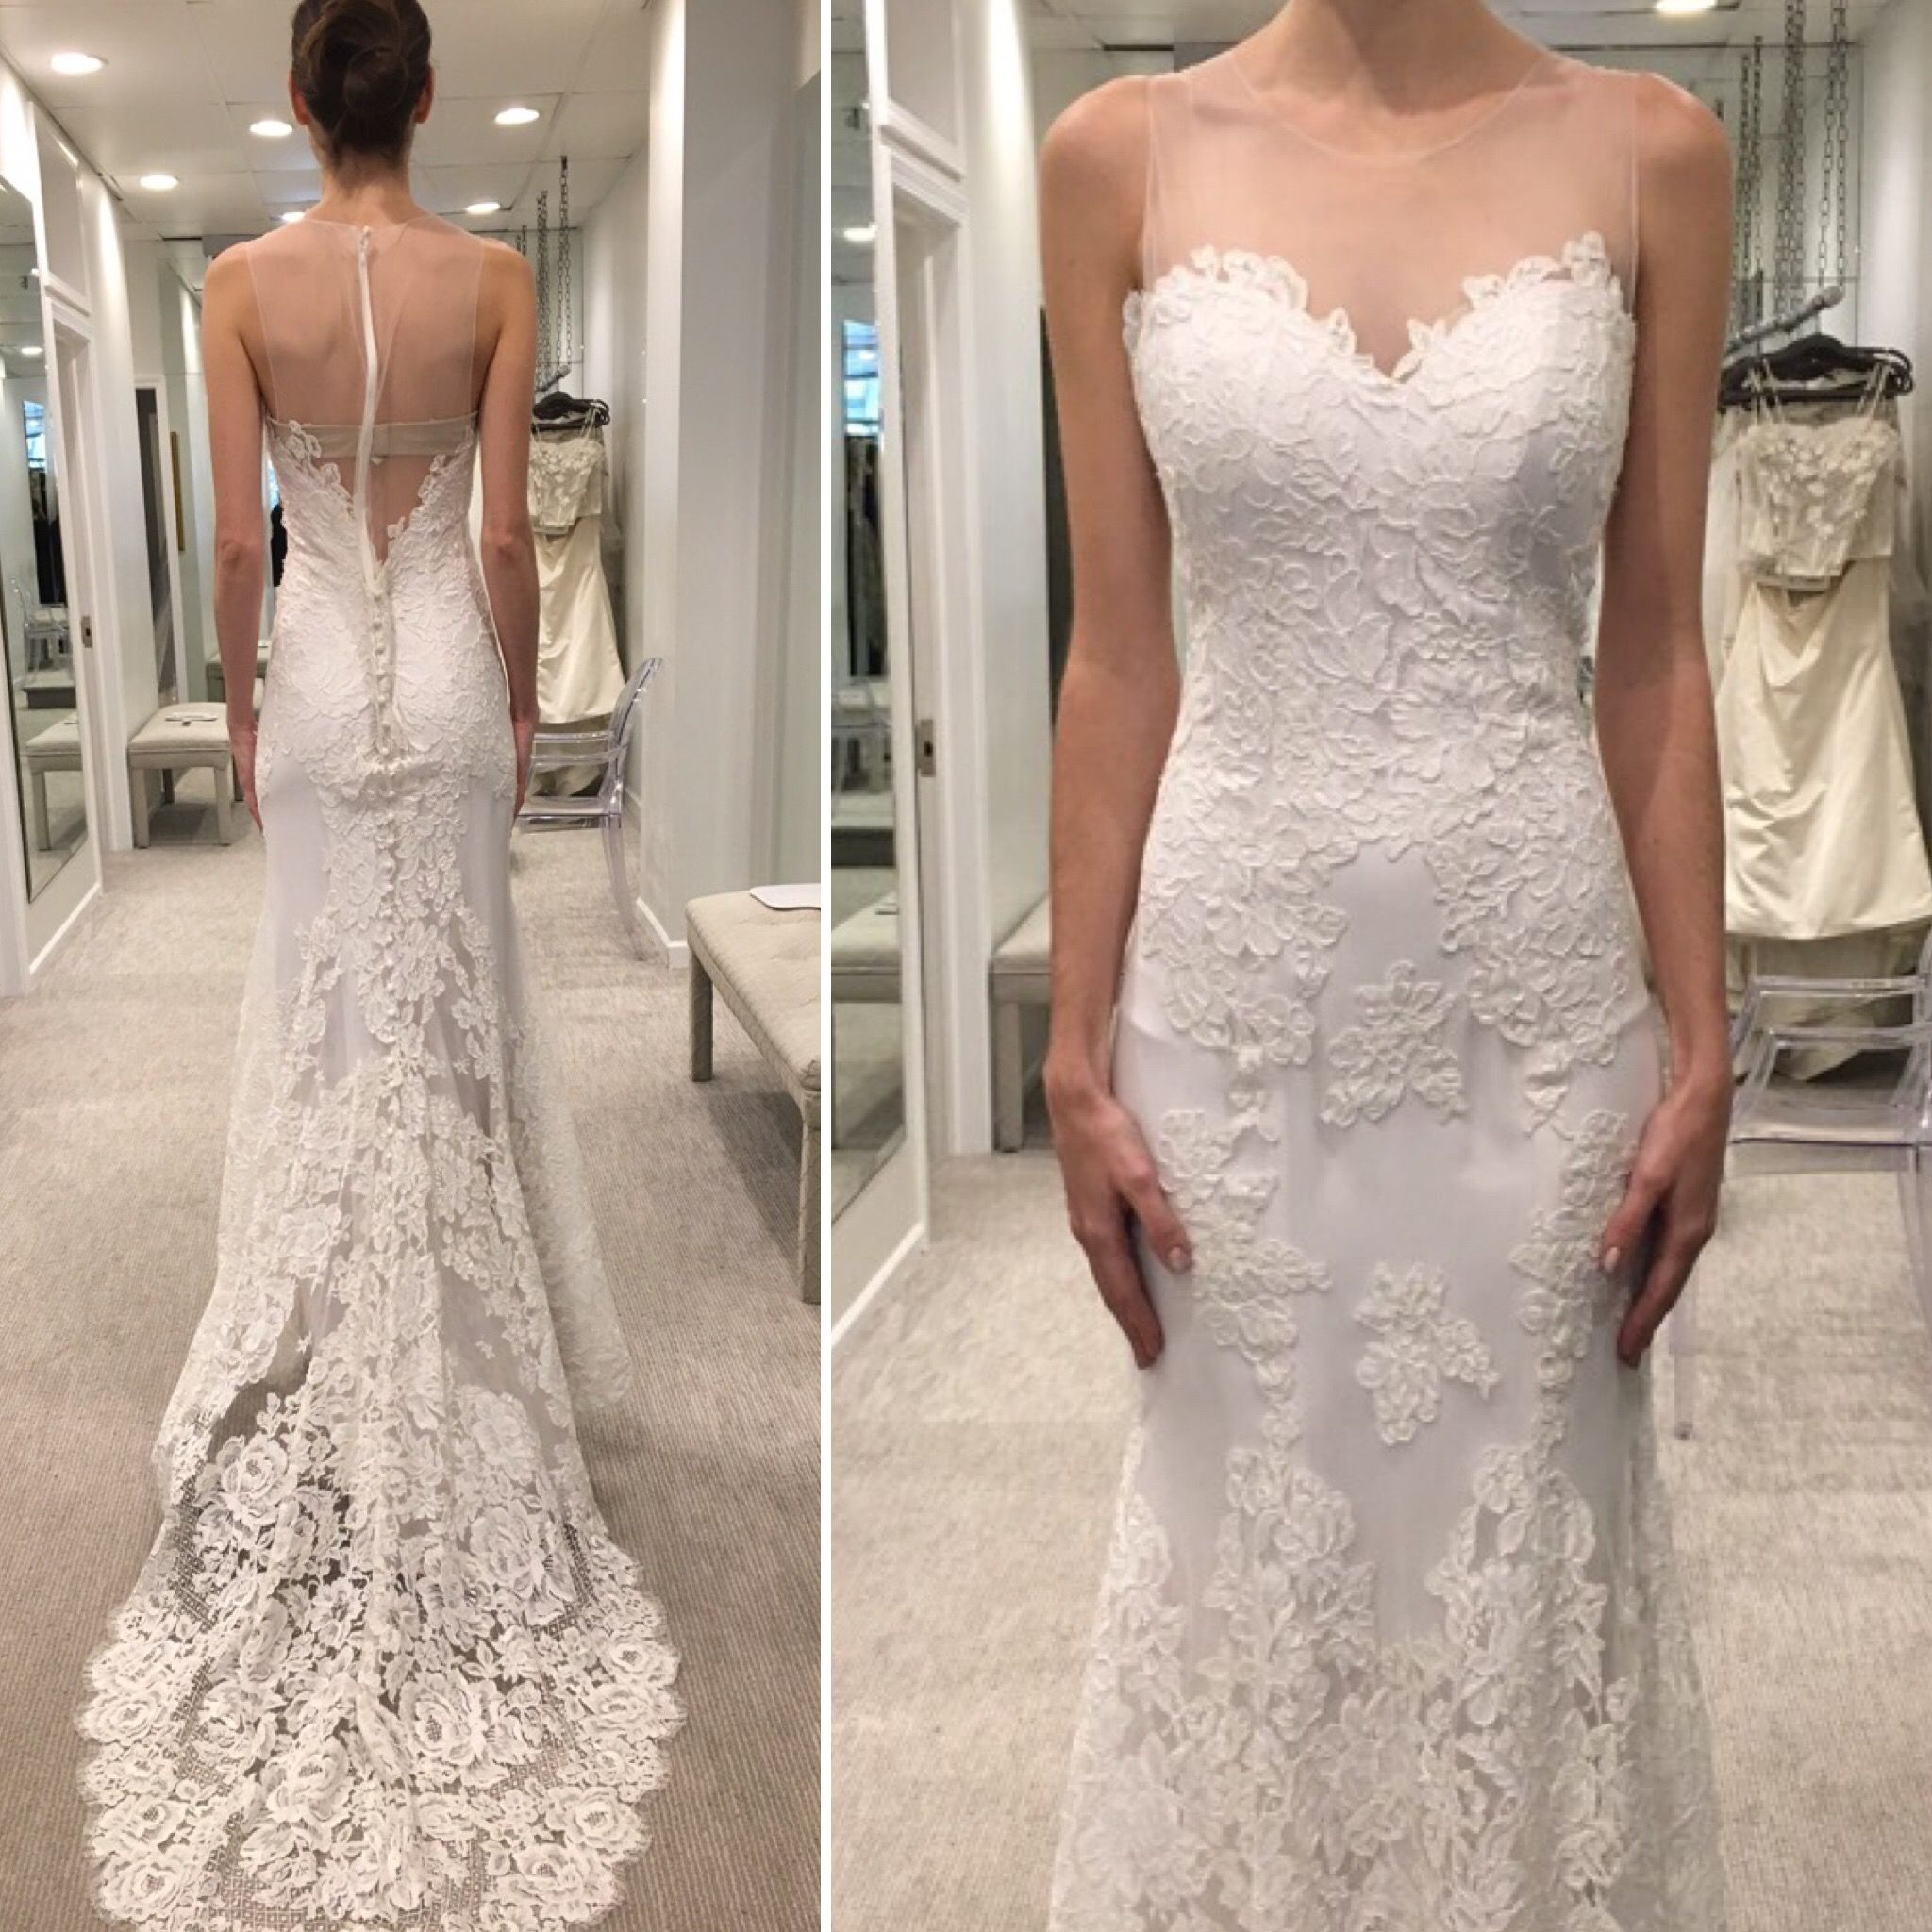 0f7d1bd36e6 Anna Maier Lydia or Lola. Find this Pin and more on Wedding Dress Shopping  ...